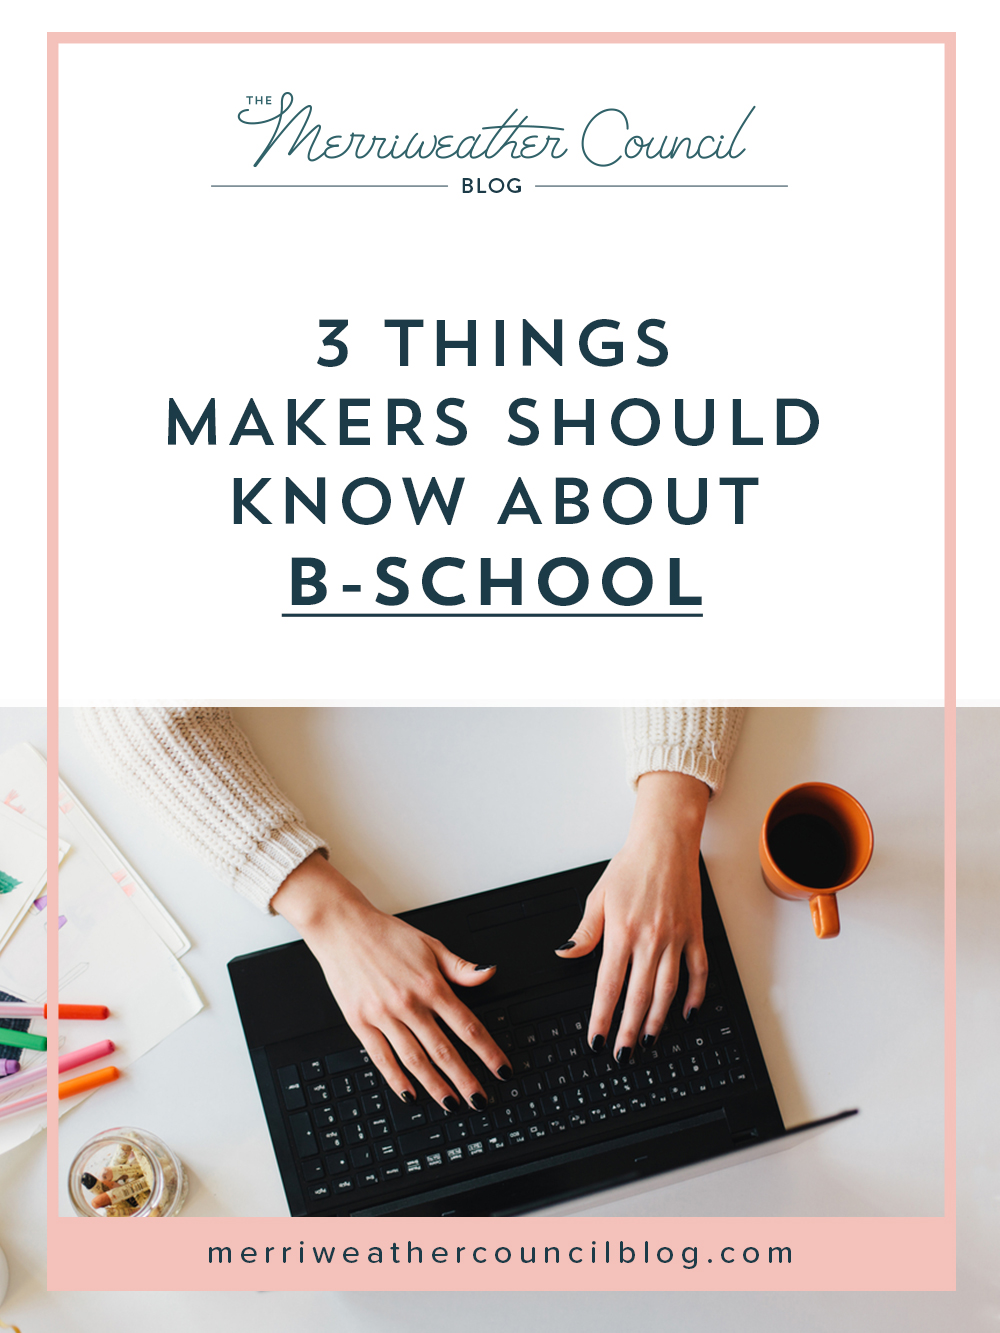 3 things makers and etsy sellers should know about b-school | the merriweather council blog